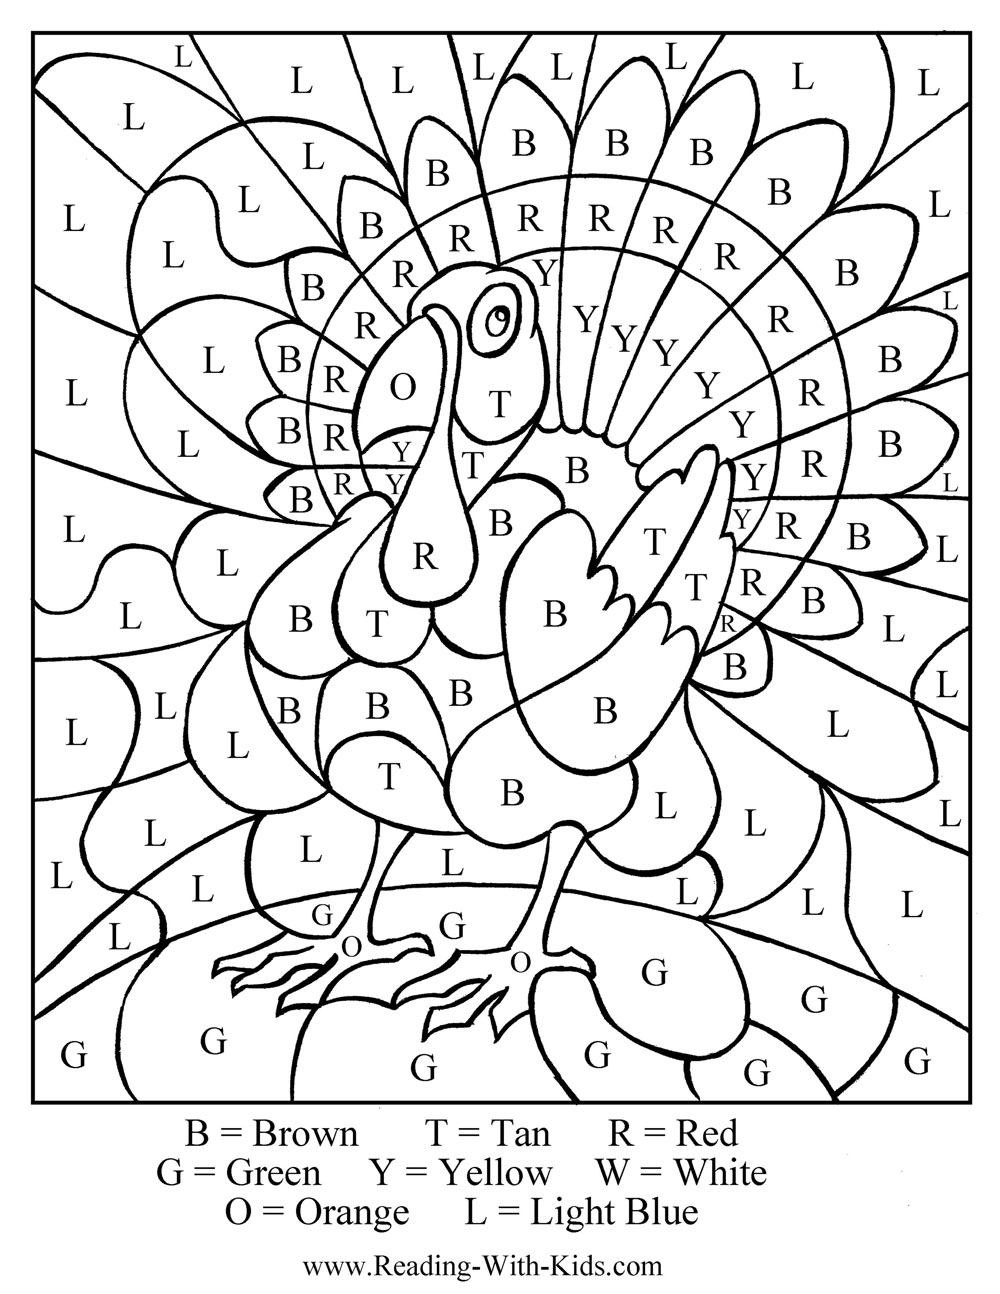 Coloring Pages ~ Thanksgiving Coloring For Kids Turkey Color - Free Printable Thanksgiving Coloring Placemats